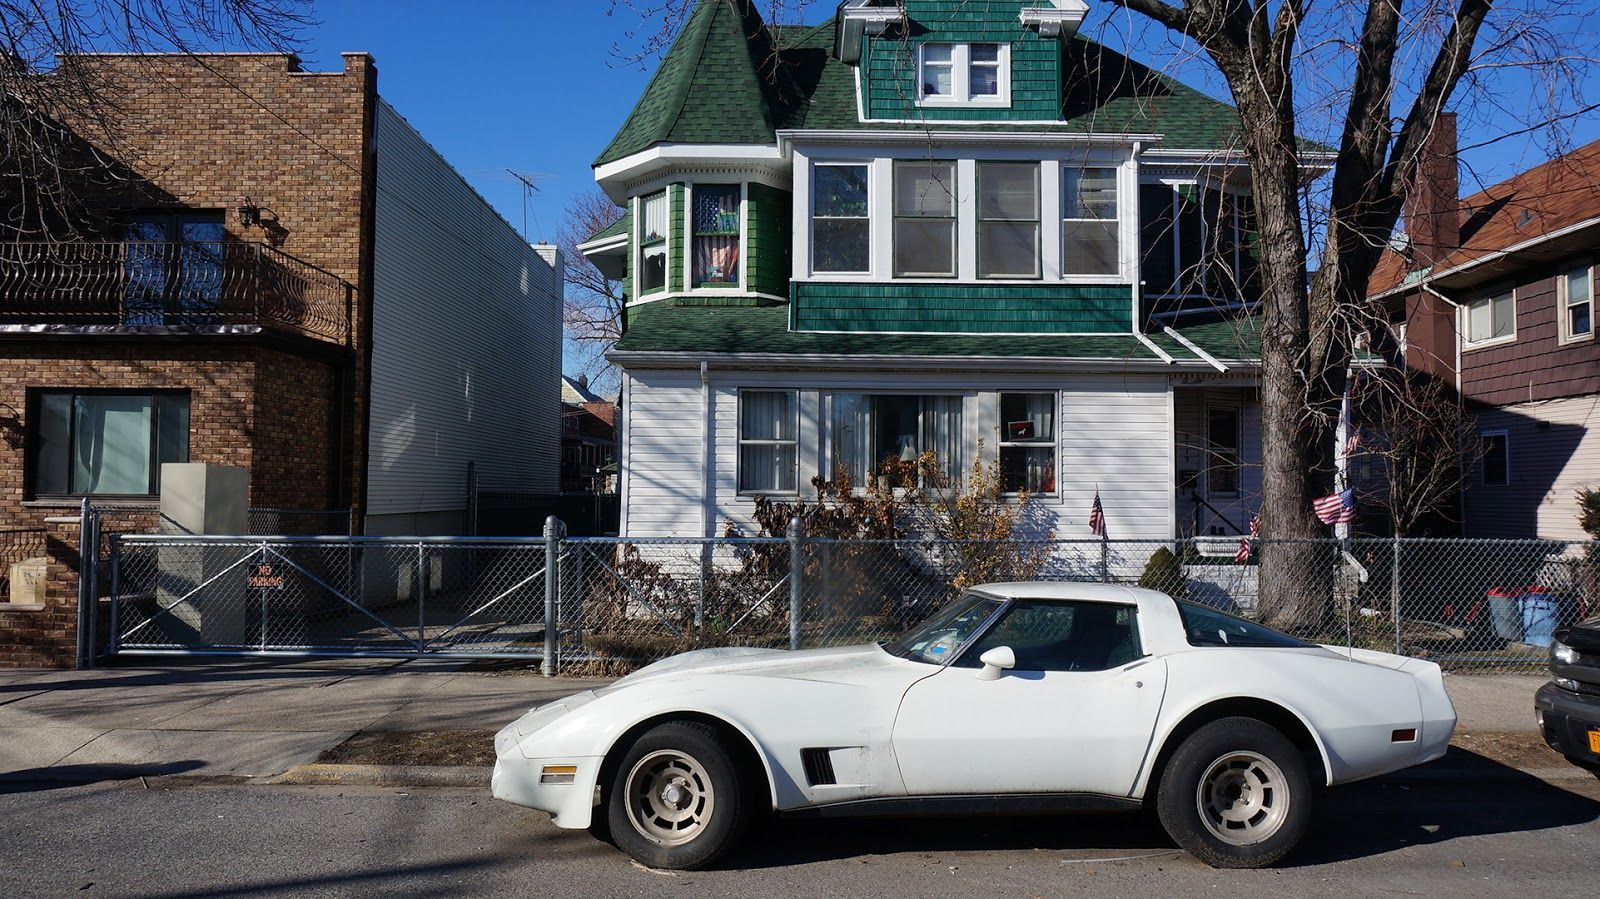 Corvette and Witch House